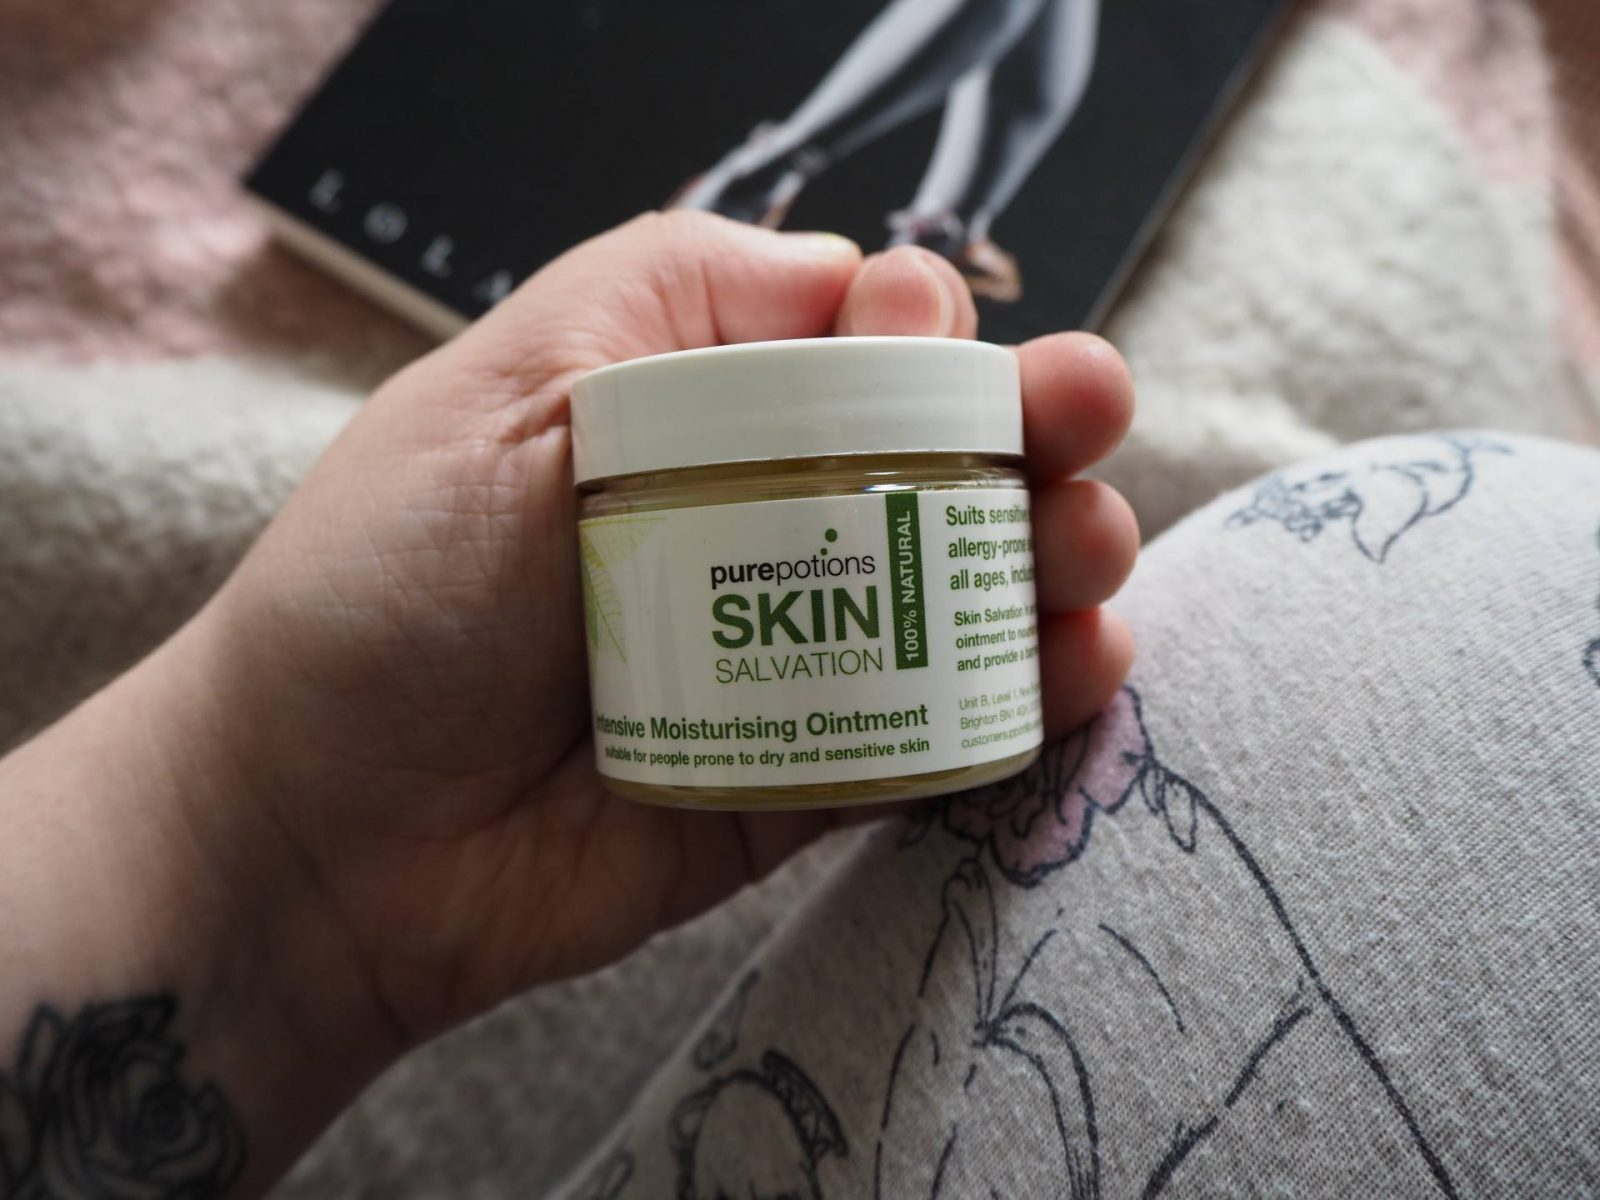 Stress and success - the importance of good skincare